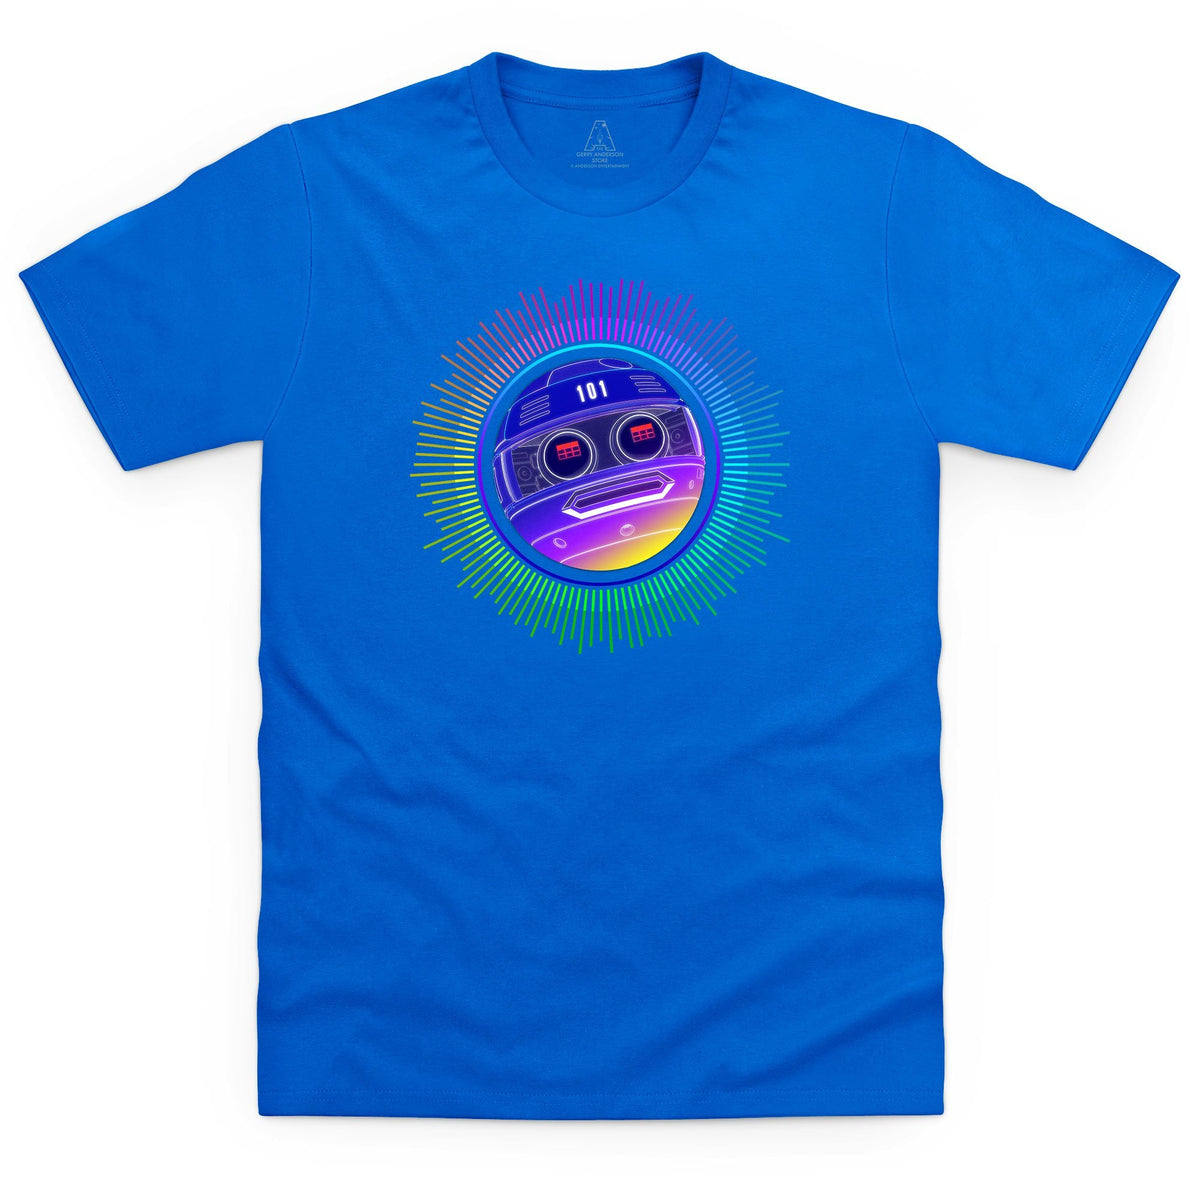 Terrahawks Zeroid Neon Men's T-Shirt [Official & Exclusive] - The Gerry Anderson Store